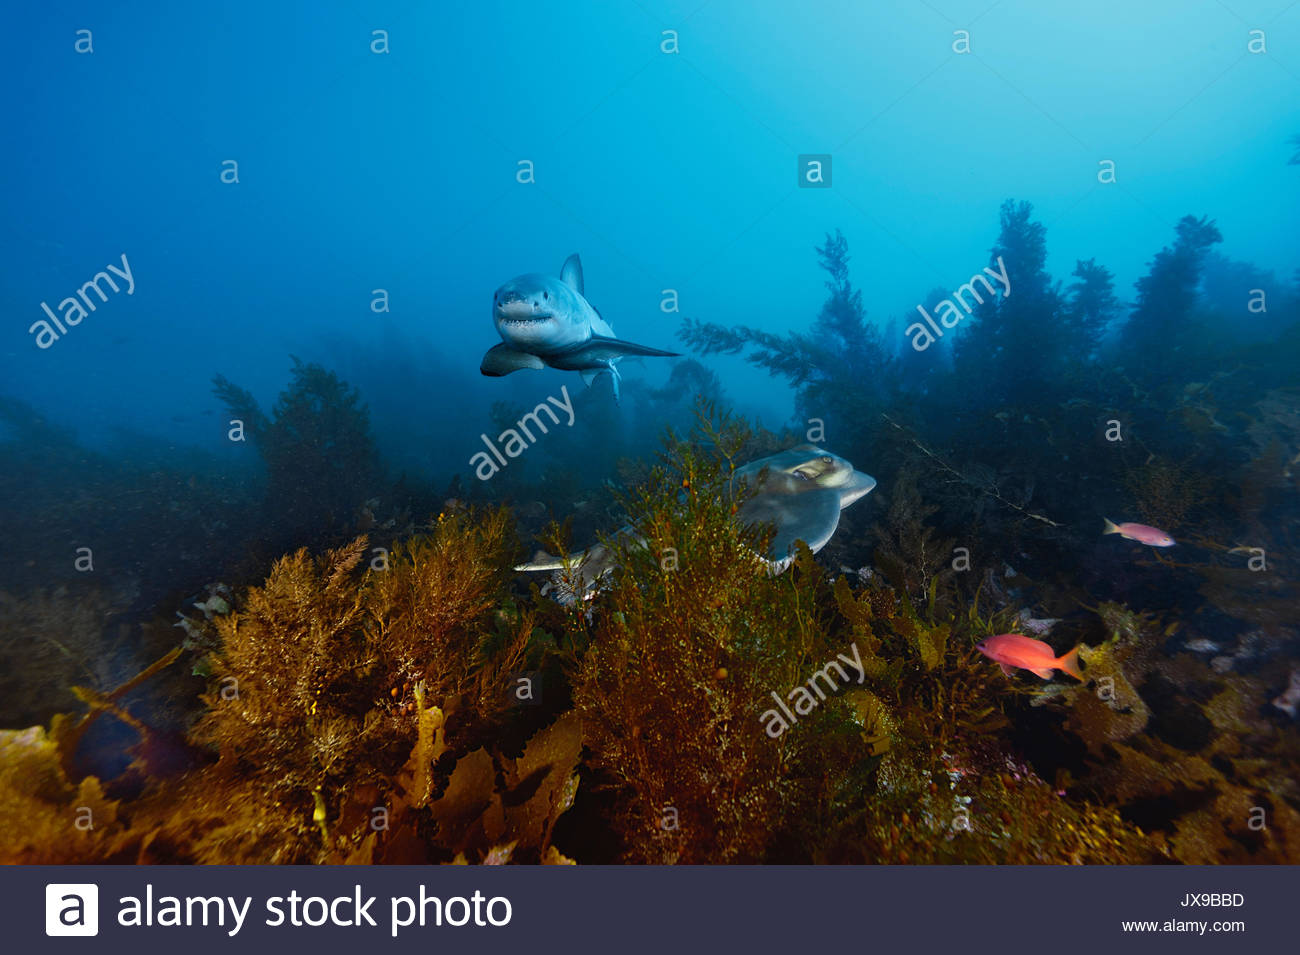 A great white shark swims past a ray in a kelp forest. - Stock Image